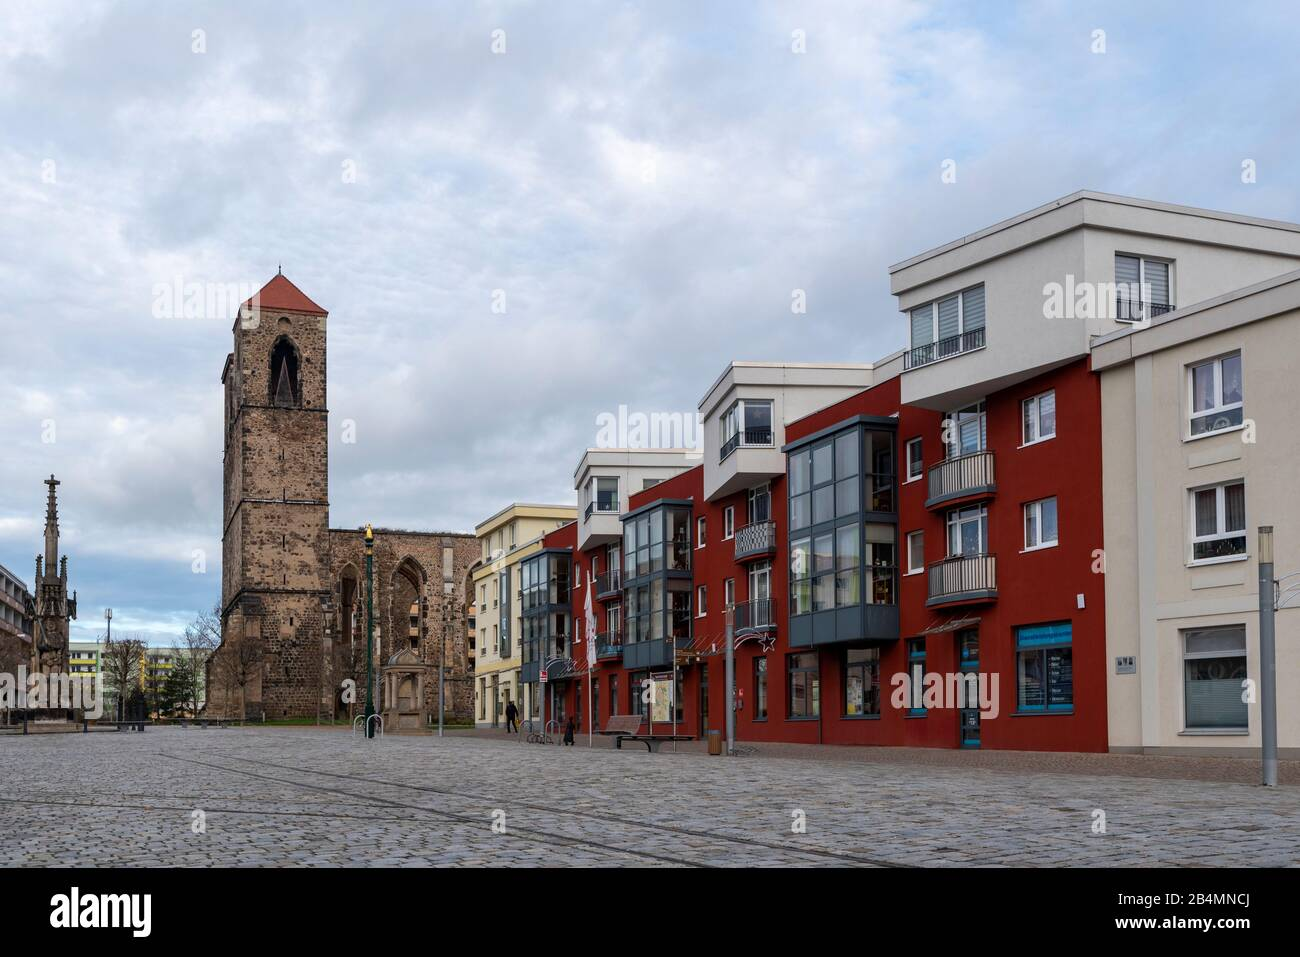 Germany, Saxony-Anhalt, Zerbst, view of modern residential buildings with the tourist information of Zerbst. In the background you can see the ruins of the St. Nikolai town church. They were destroyed in the last days of the war in 1945. Stock Photo